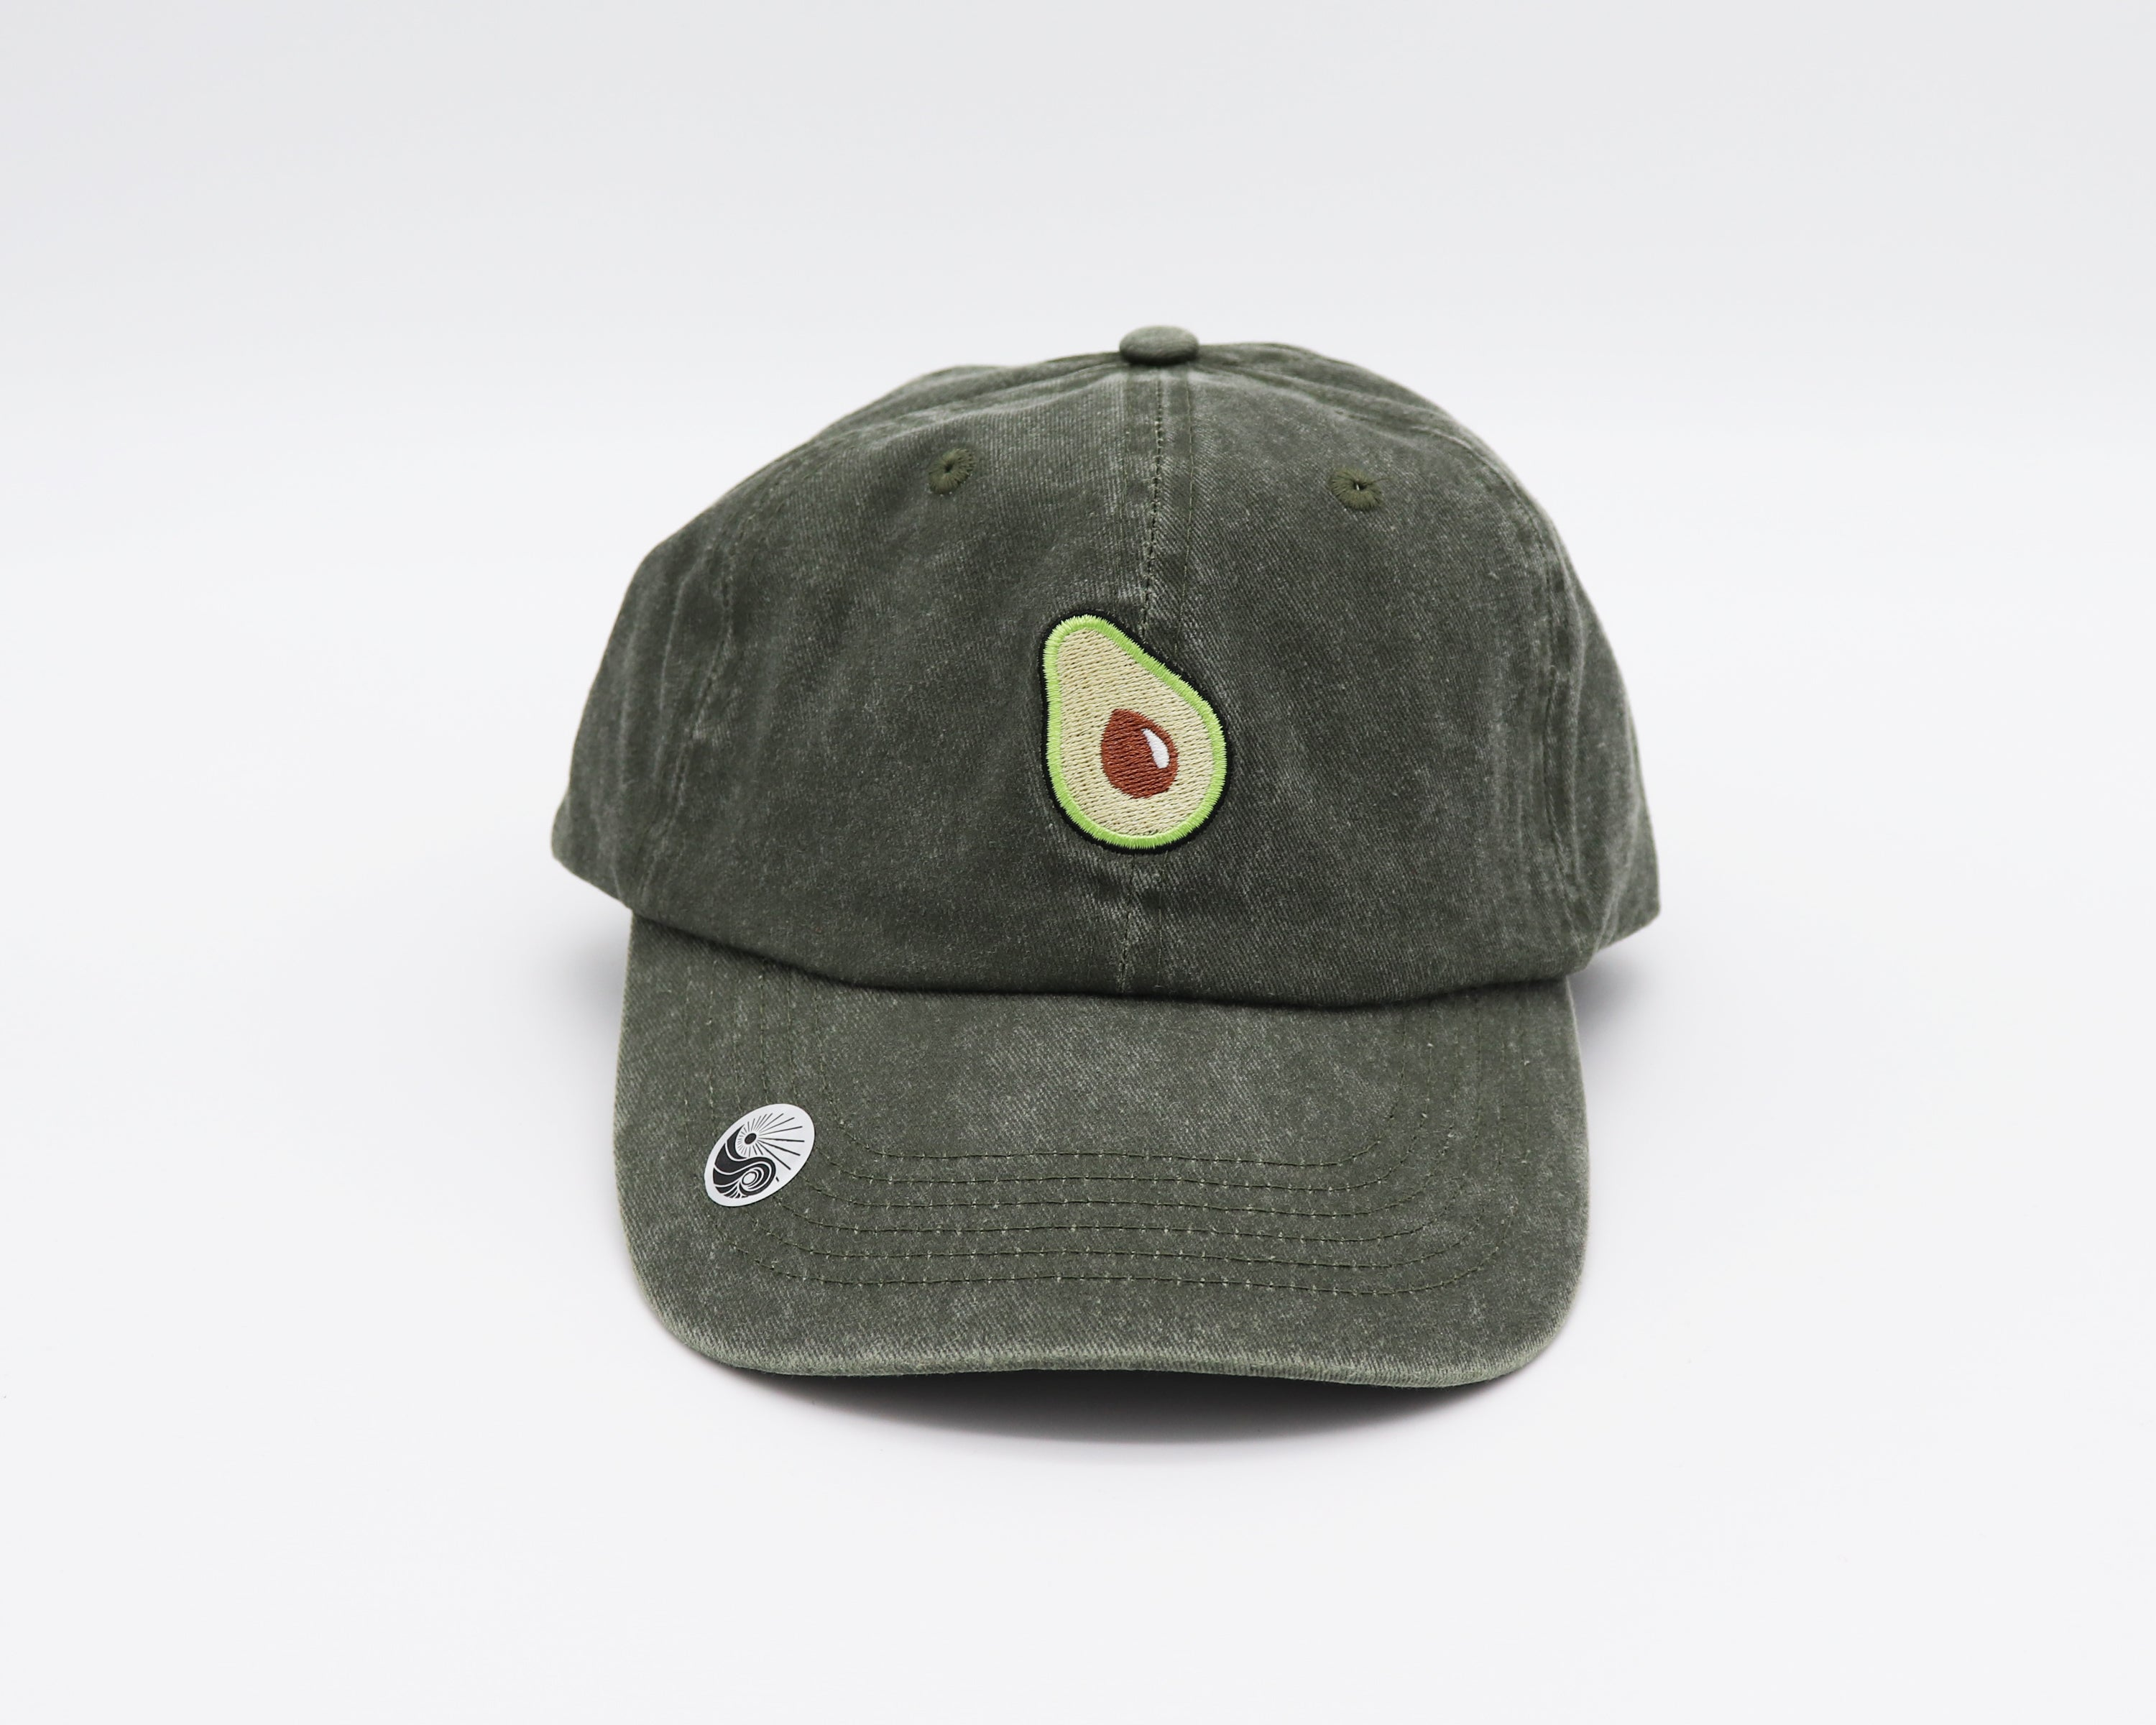 Faded Olive unstructured dad hat with a bronze clasp on back and  half an avocado embroidered in the center front